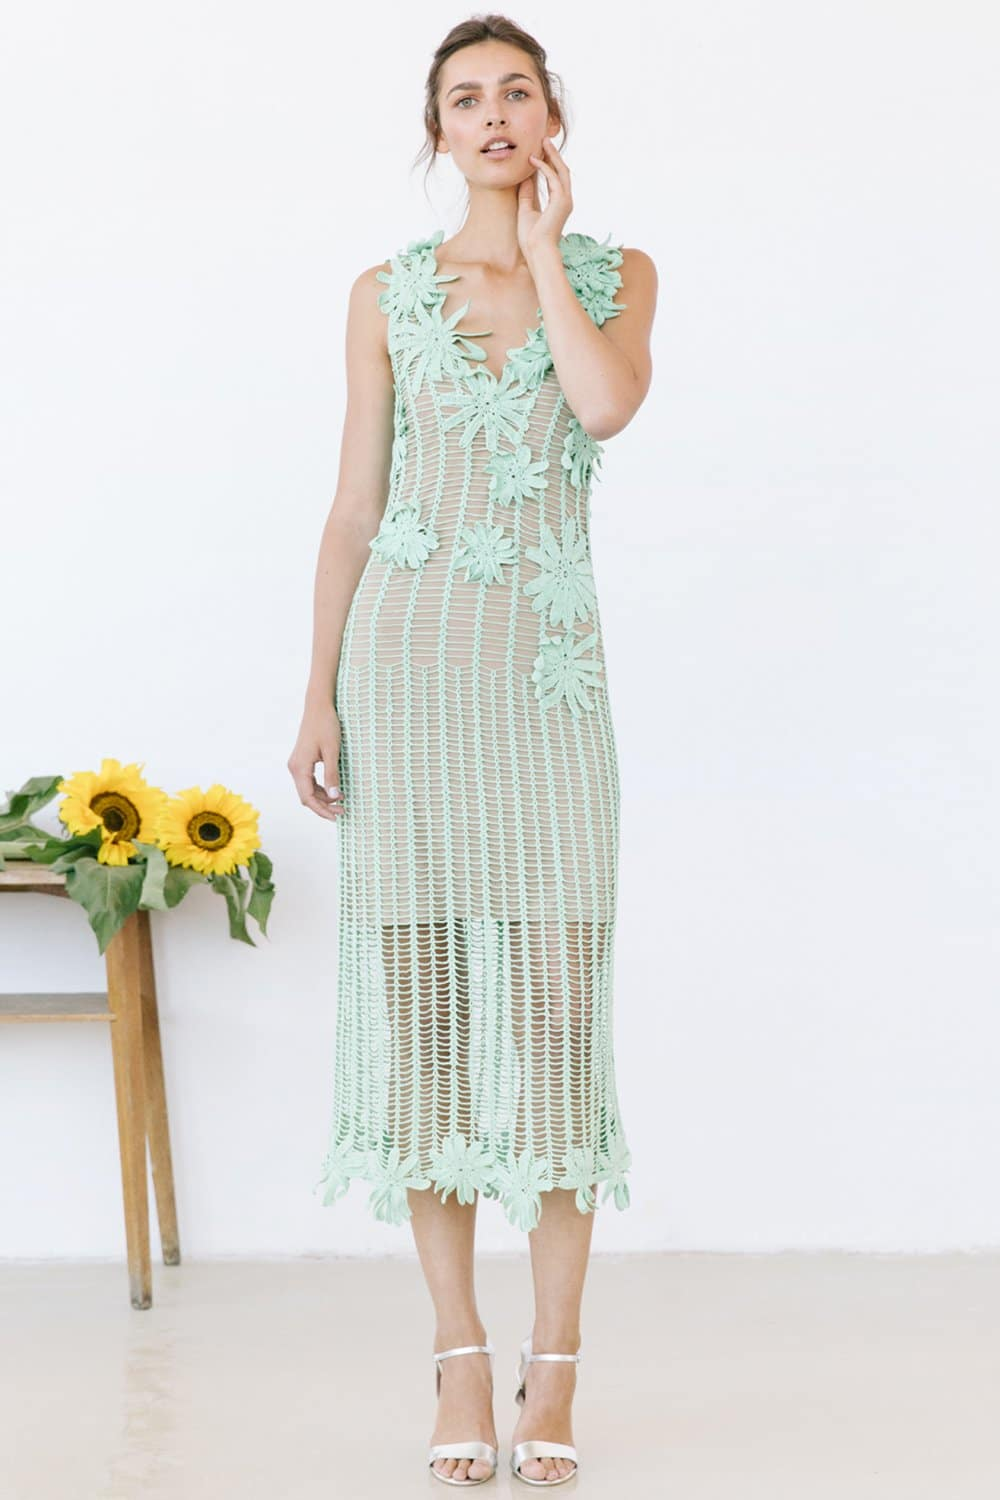 5e440f53a71a The Most Beautiful Eco-Friendly and Ethical Dresses for Cocktail ...